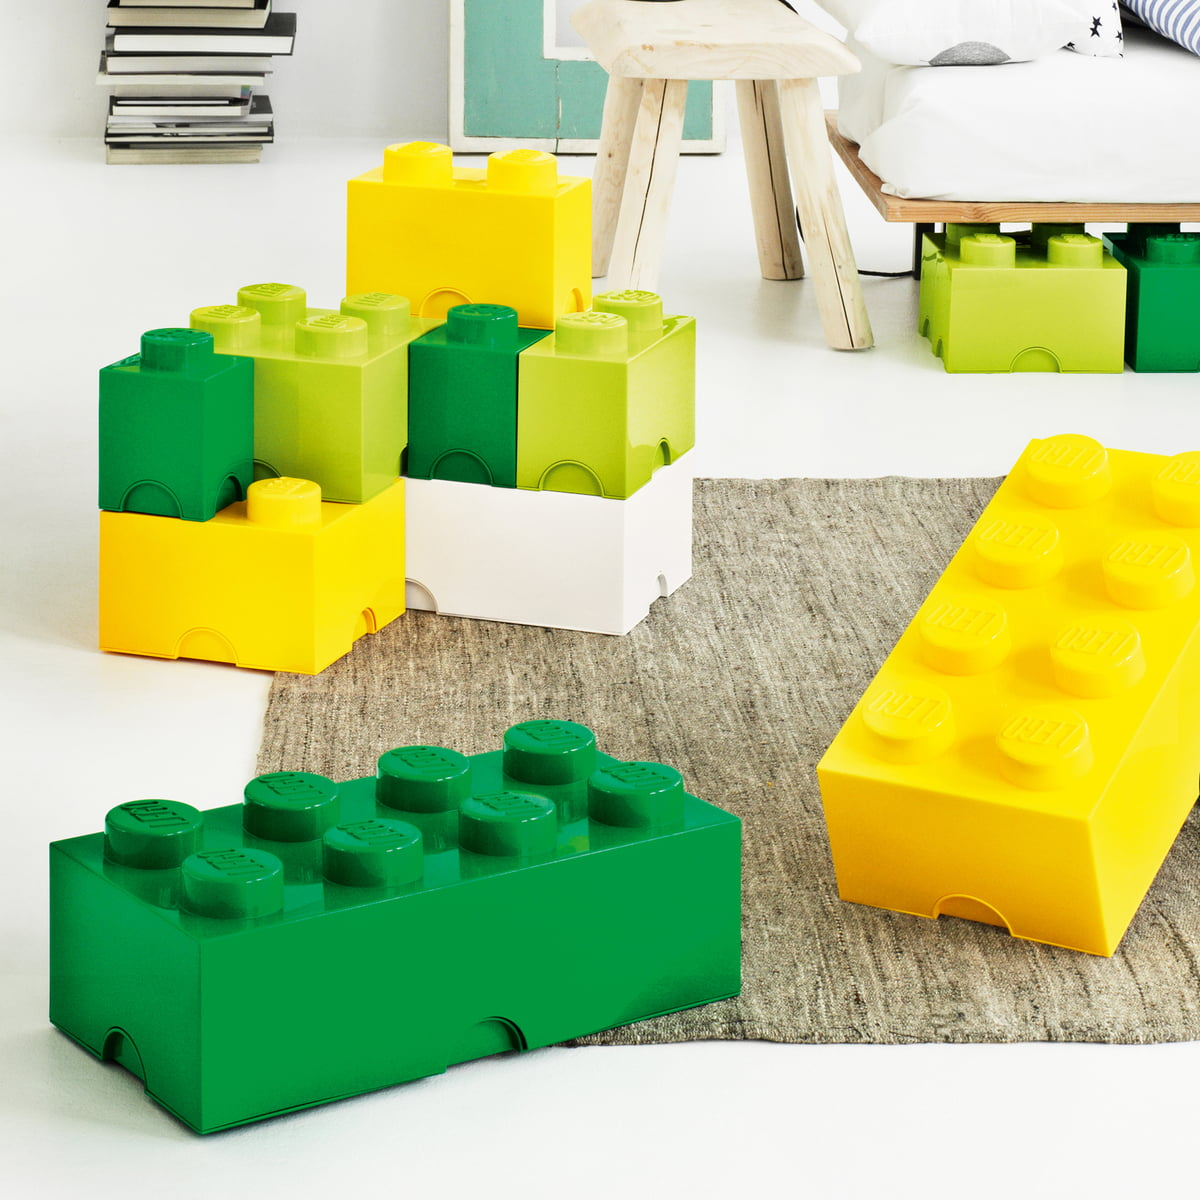 Lego   Storage Brick, Yellow, Green